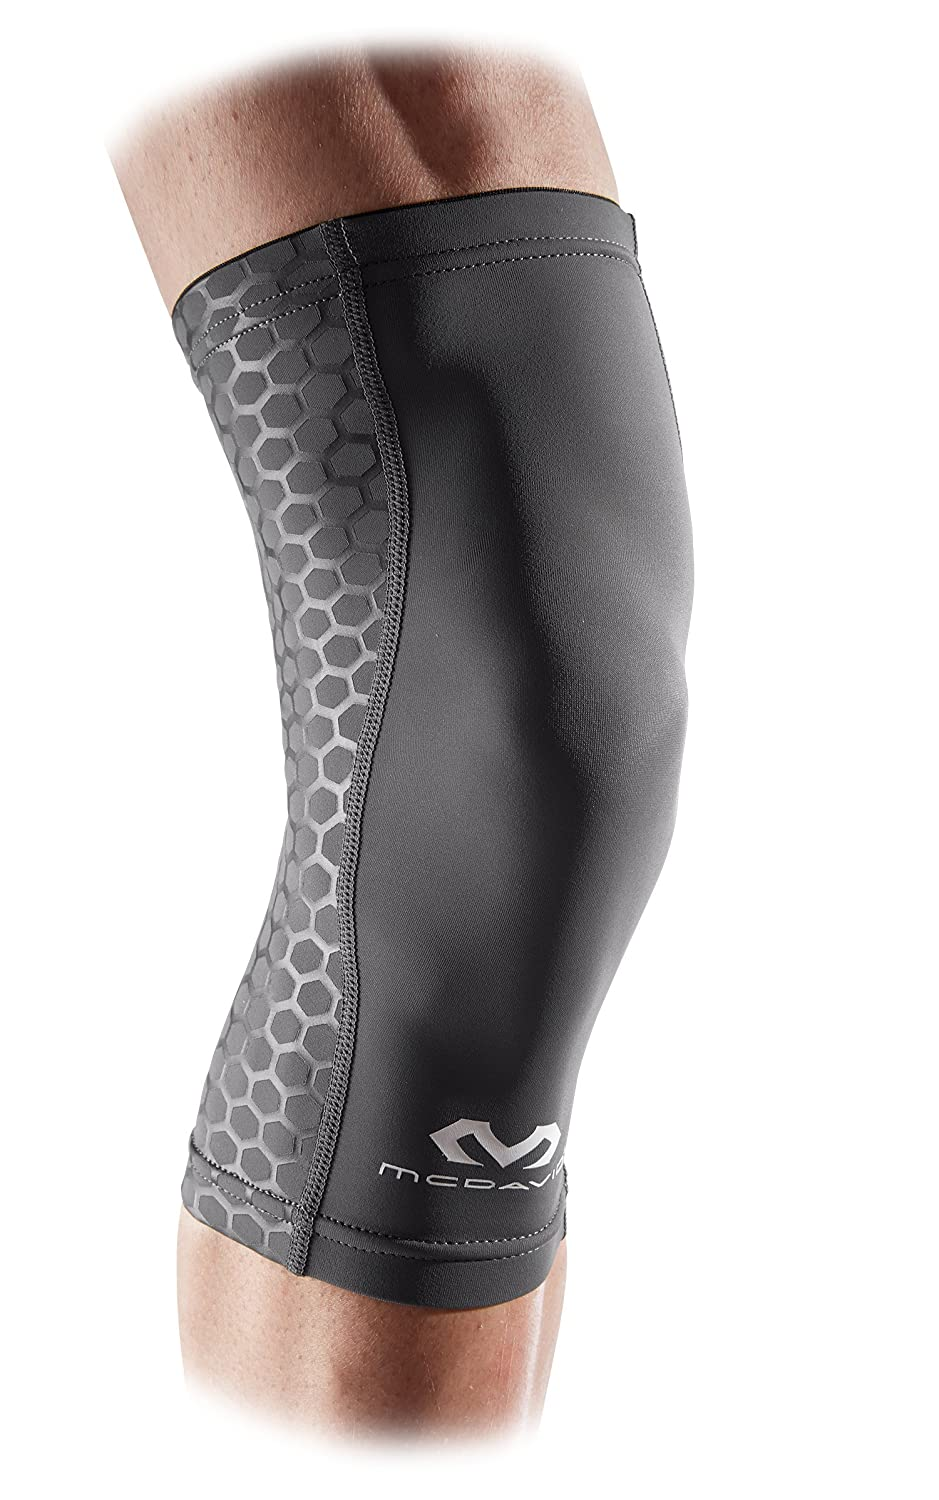 McDavid Active Comfort Compression Knee Sleeve for Support and Pain Relief While Active